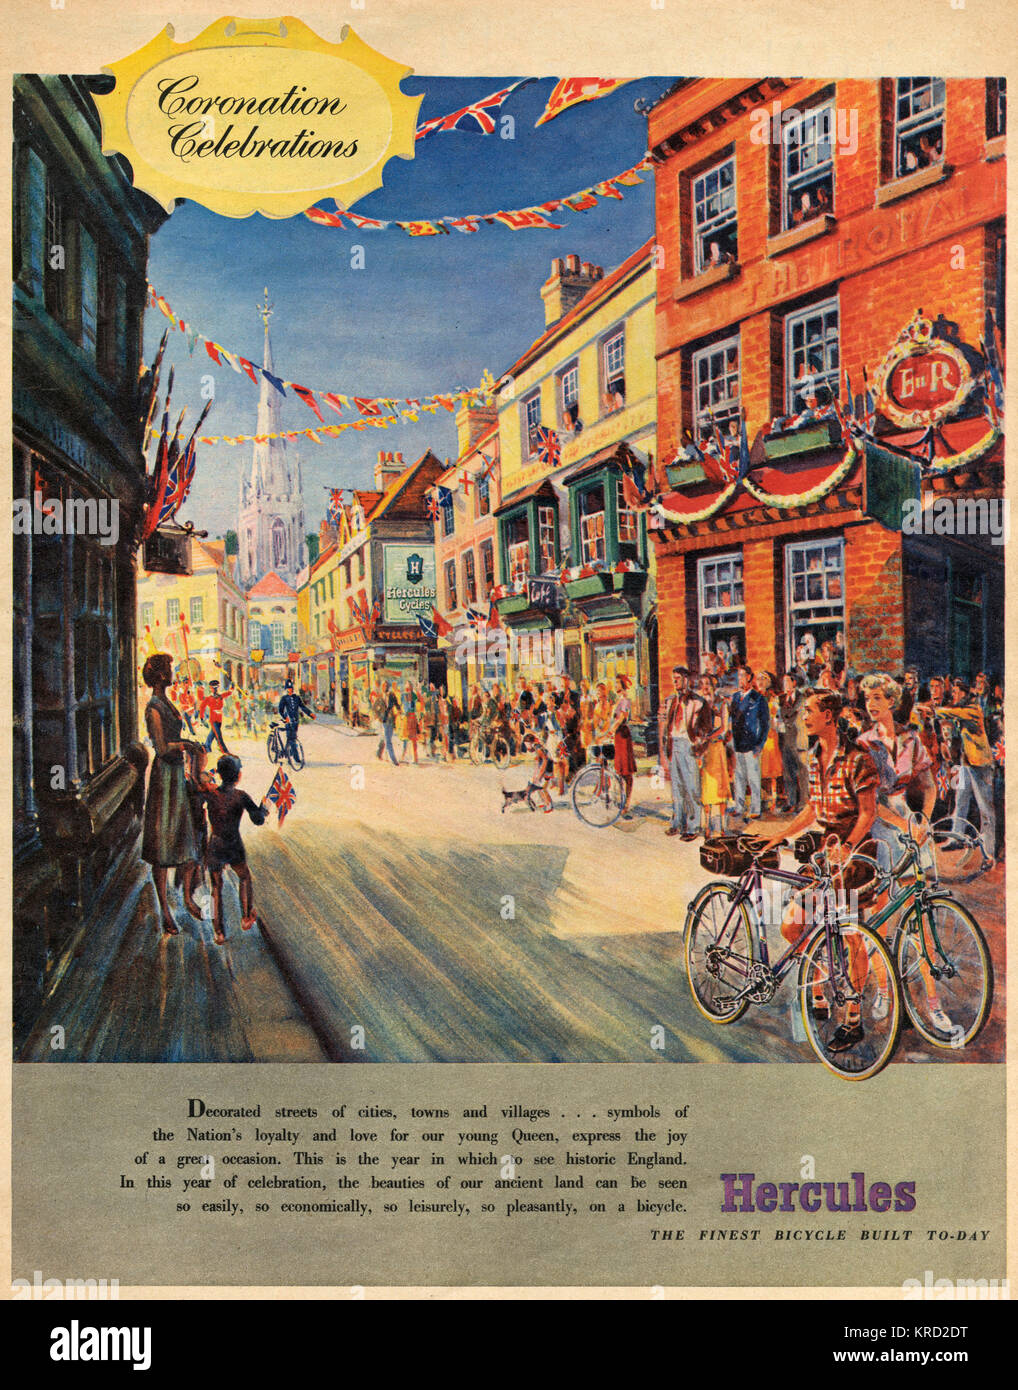 Advertisement for Hercules Bicycles, founded in 1910 in Birmingham, showing the street of a typical British town - Stock Image